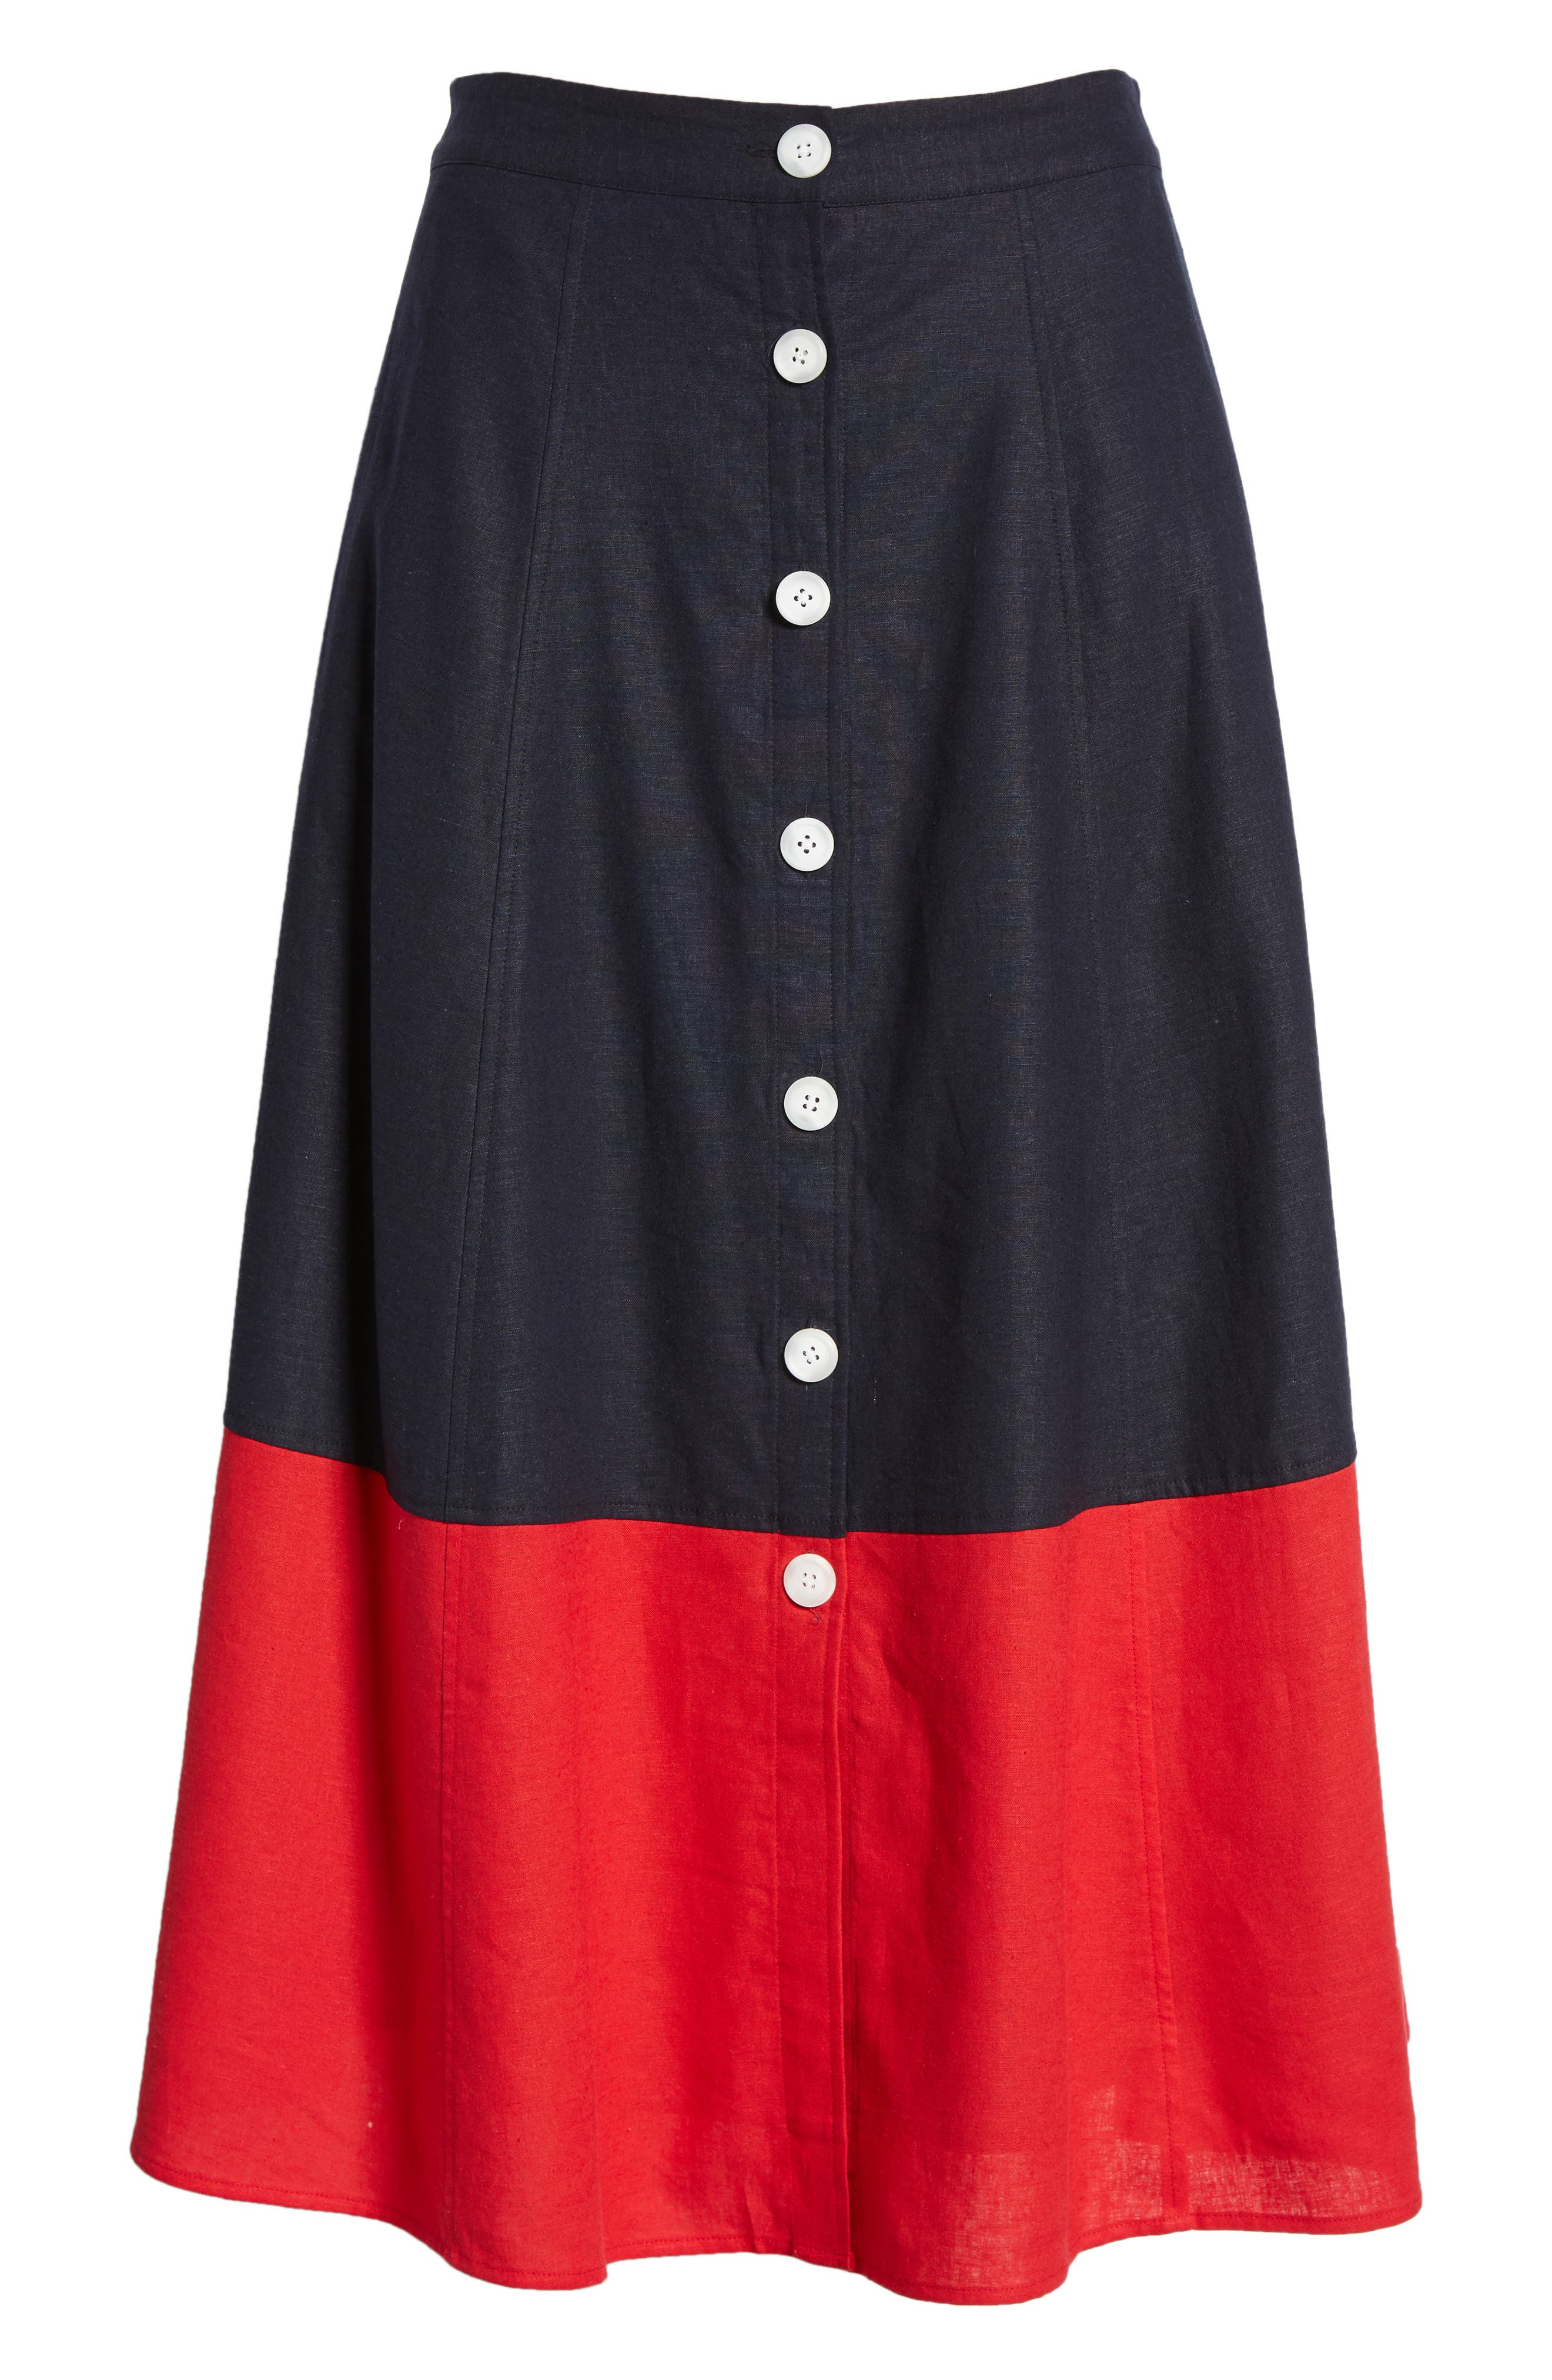 Colorblock Linen Blend Skirt,                             Alternate thumbnail 6, color,                             Navy- Red Colorblock